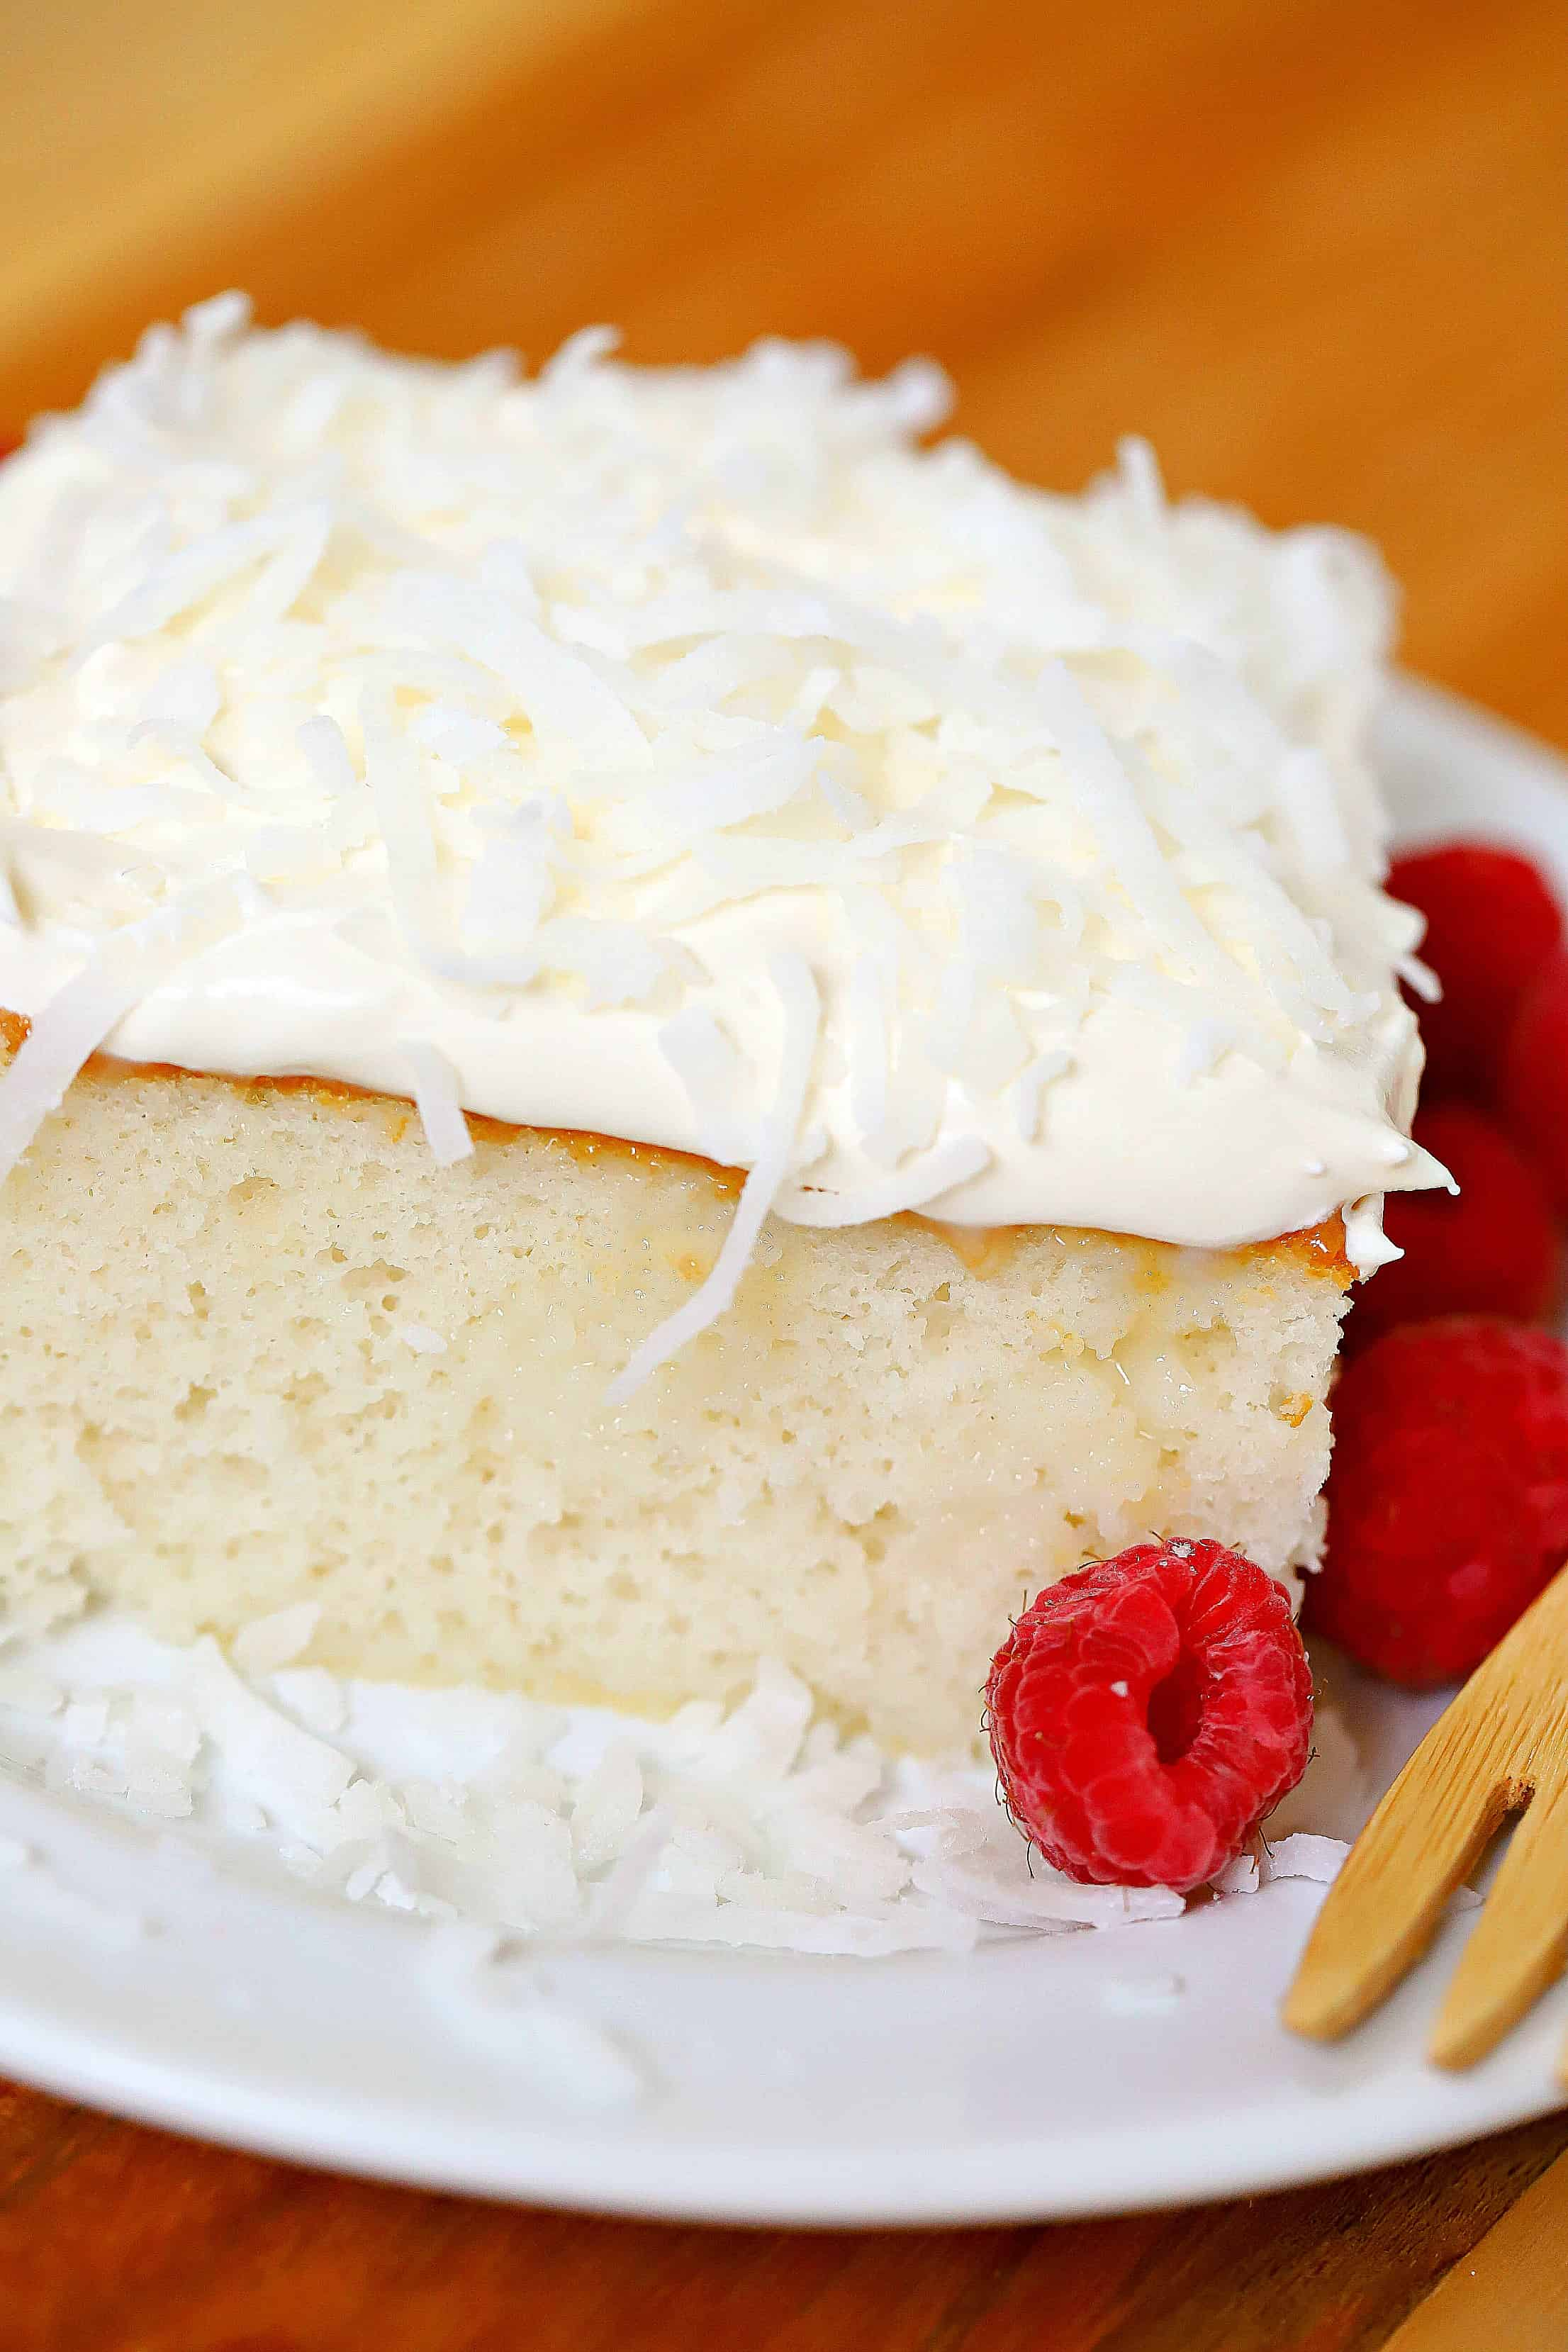 Coconut Cream Cake topped with whipped cream and coconut and a side of raspberries.